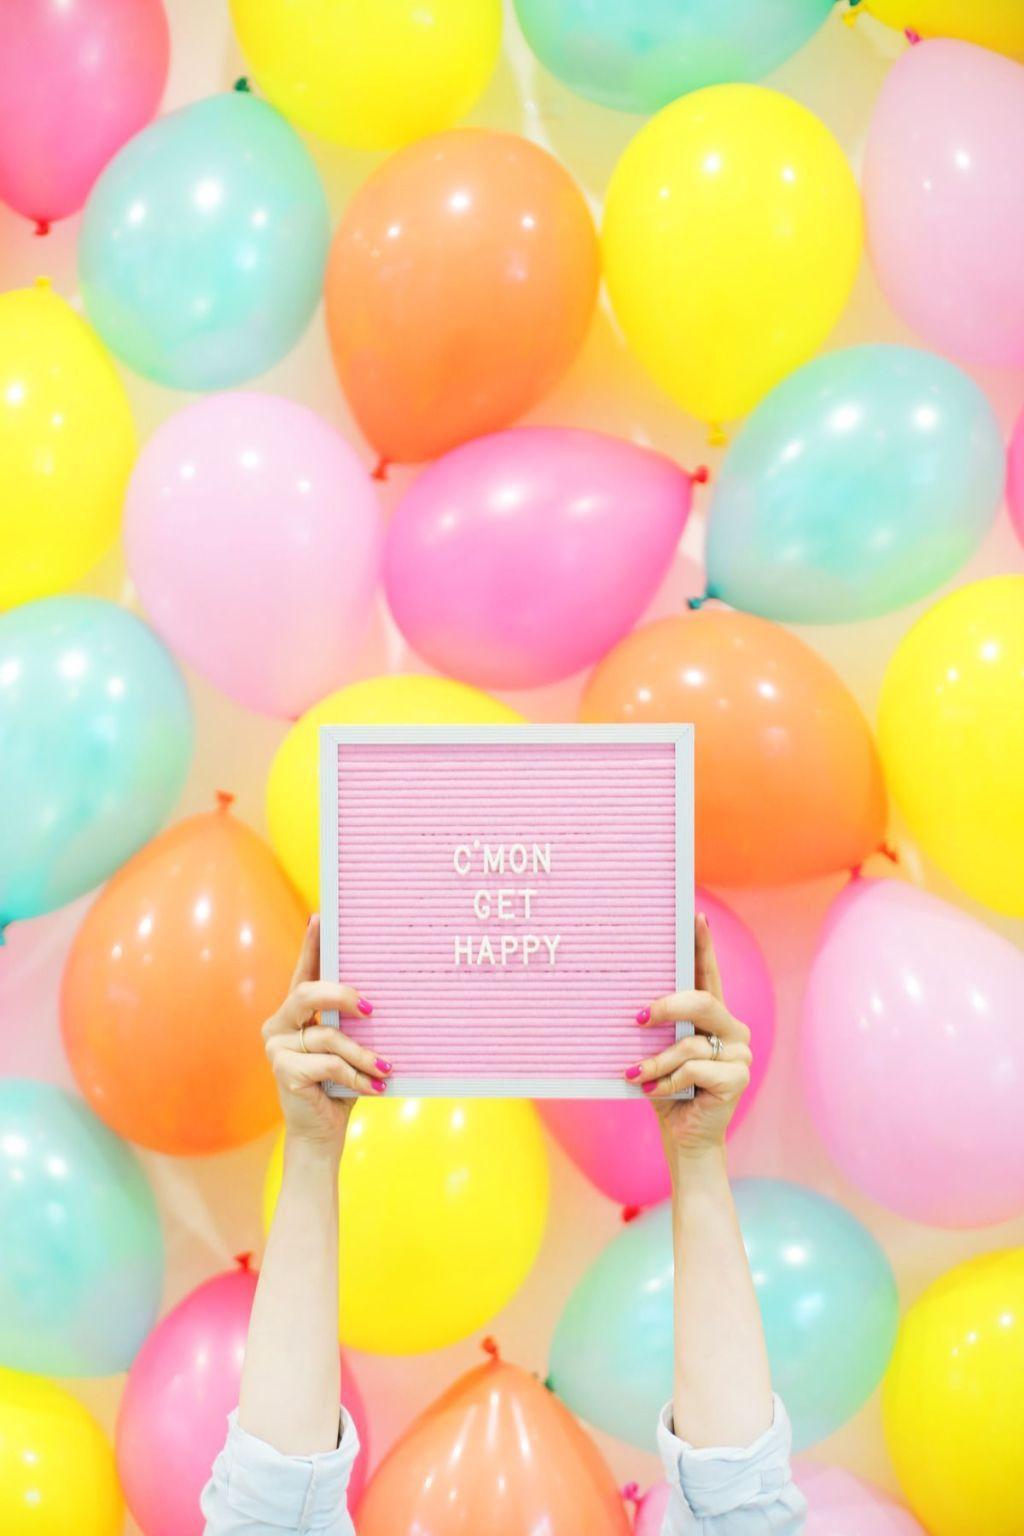 Decoration with balloons: 85 inspirations to decorate 2